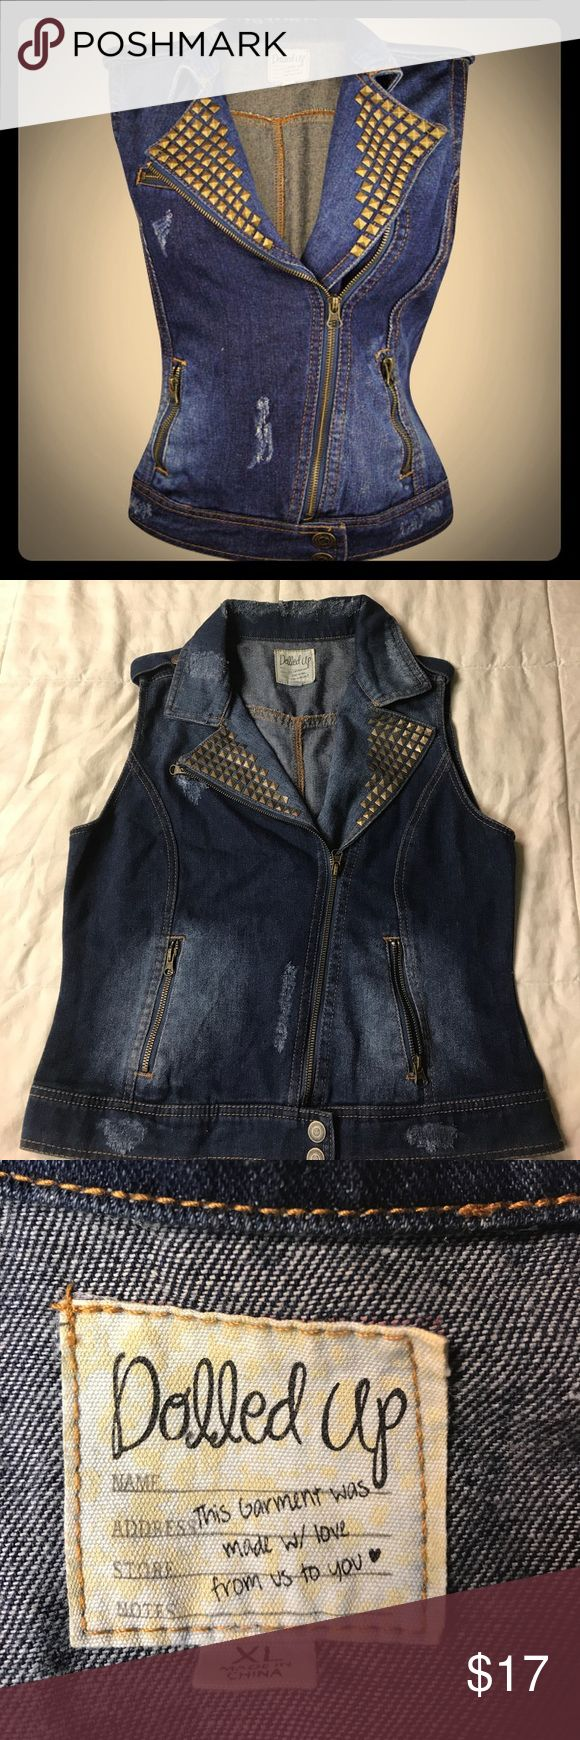 Distressed Dolled Up Denim Vest 💕🕸💕 never worn! Punk rock, metal vest worthy! Form fitting and super comfortable material. Gold pyramids/studs on the front collar. Two front zipper pockets that are actually functional! Would look great wth some awesome patches sewed on if that's your thing! 🦇💕 Size XL, but I think it fits between a L and XL. dolled up Jackets & Coats Vests